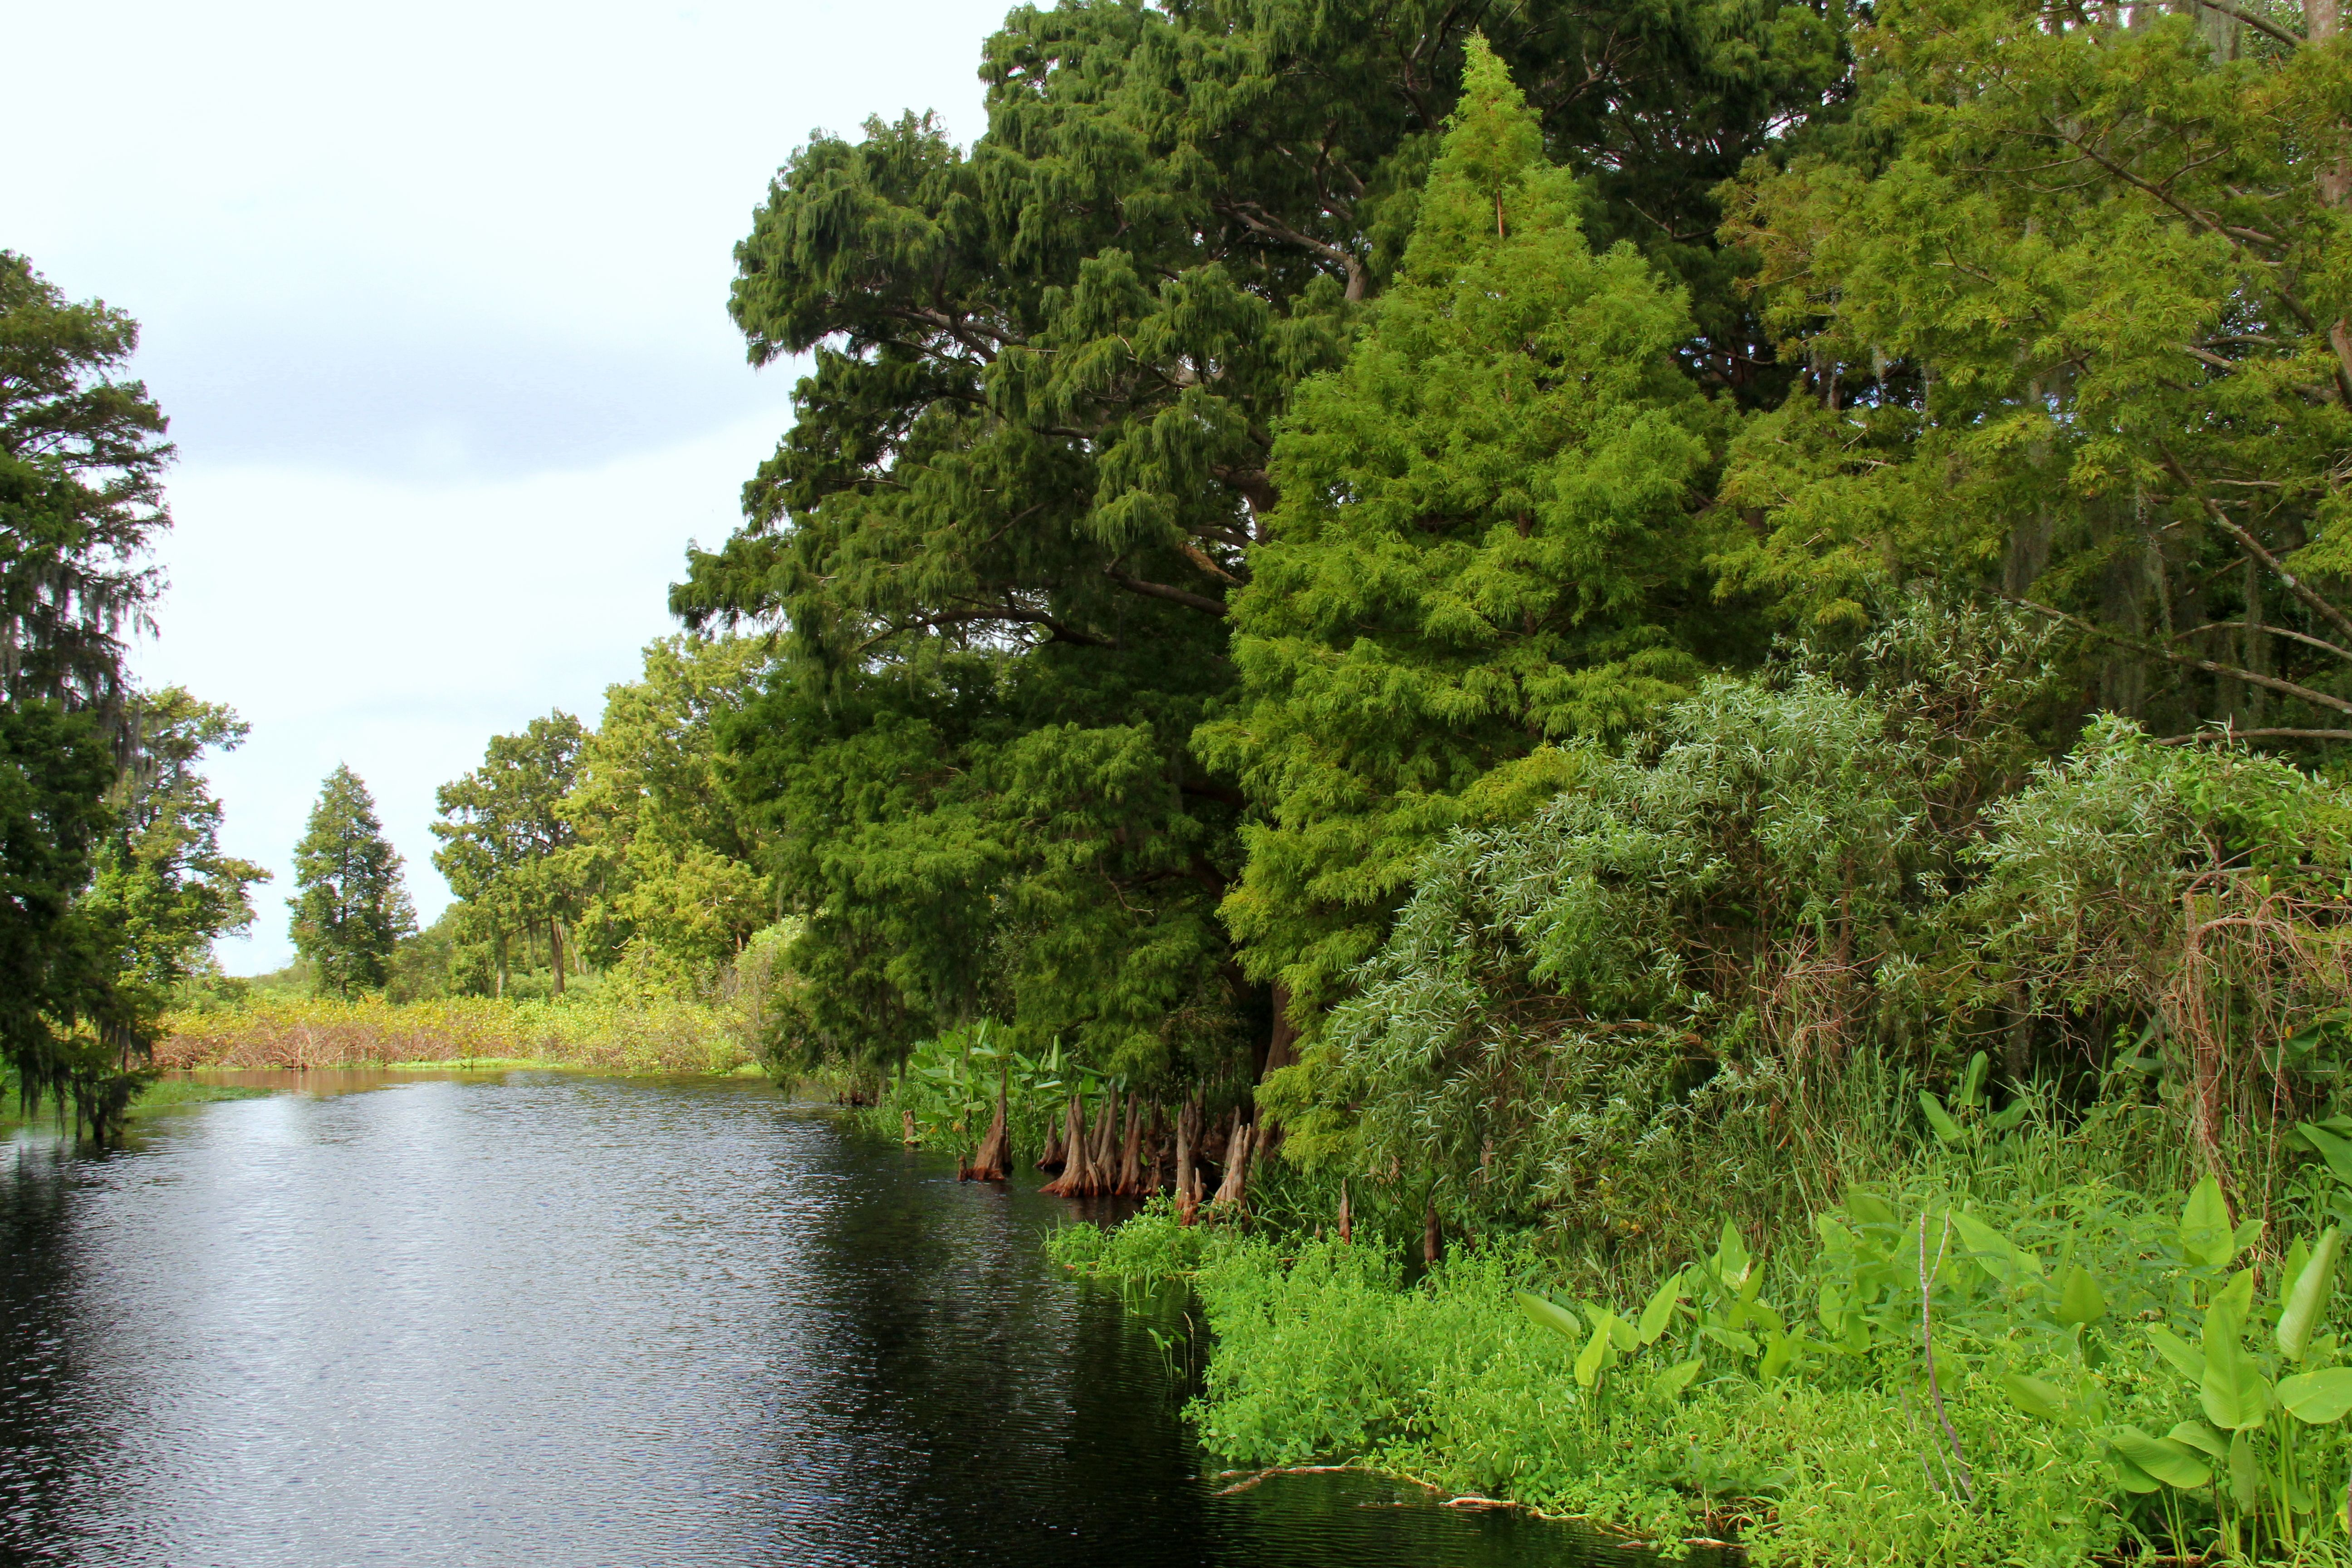 Orlando Airboat rides! We have the best scenery ever